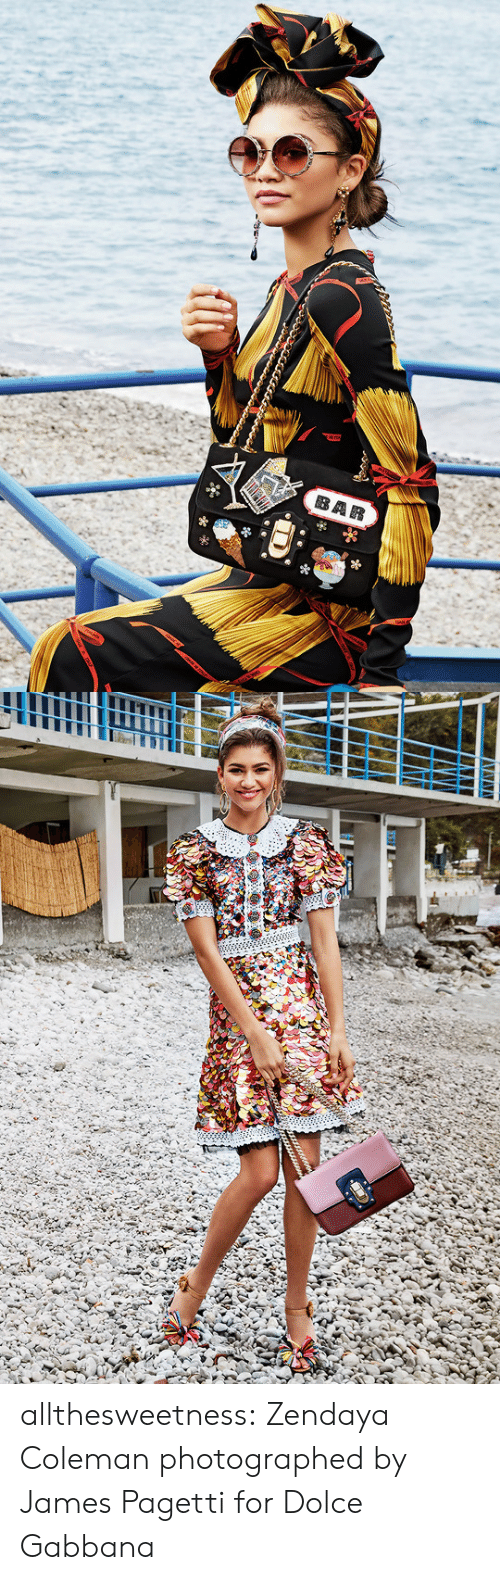 Target, Tumblr, and Blog: allthesweetness:  Zendaya Coleman photographed by James Pagetti for Dolce  Gabbana